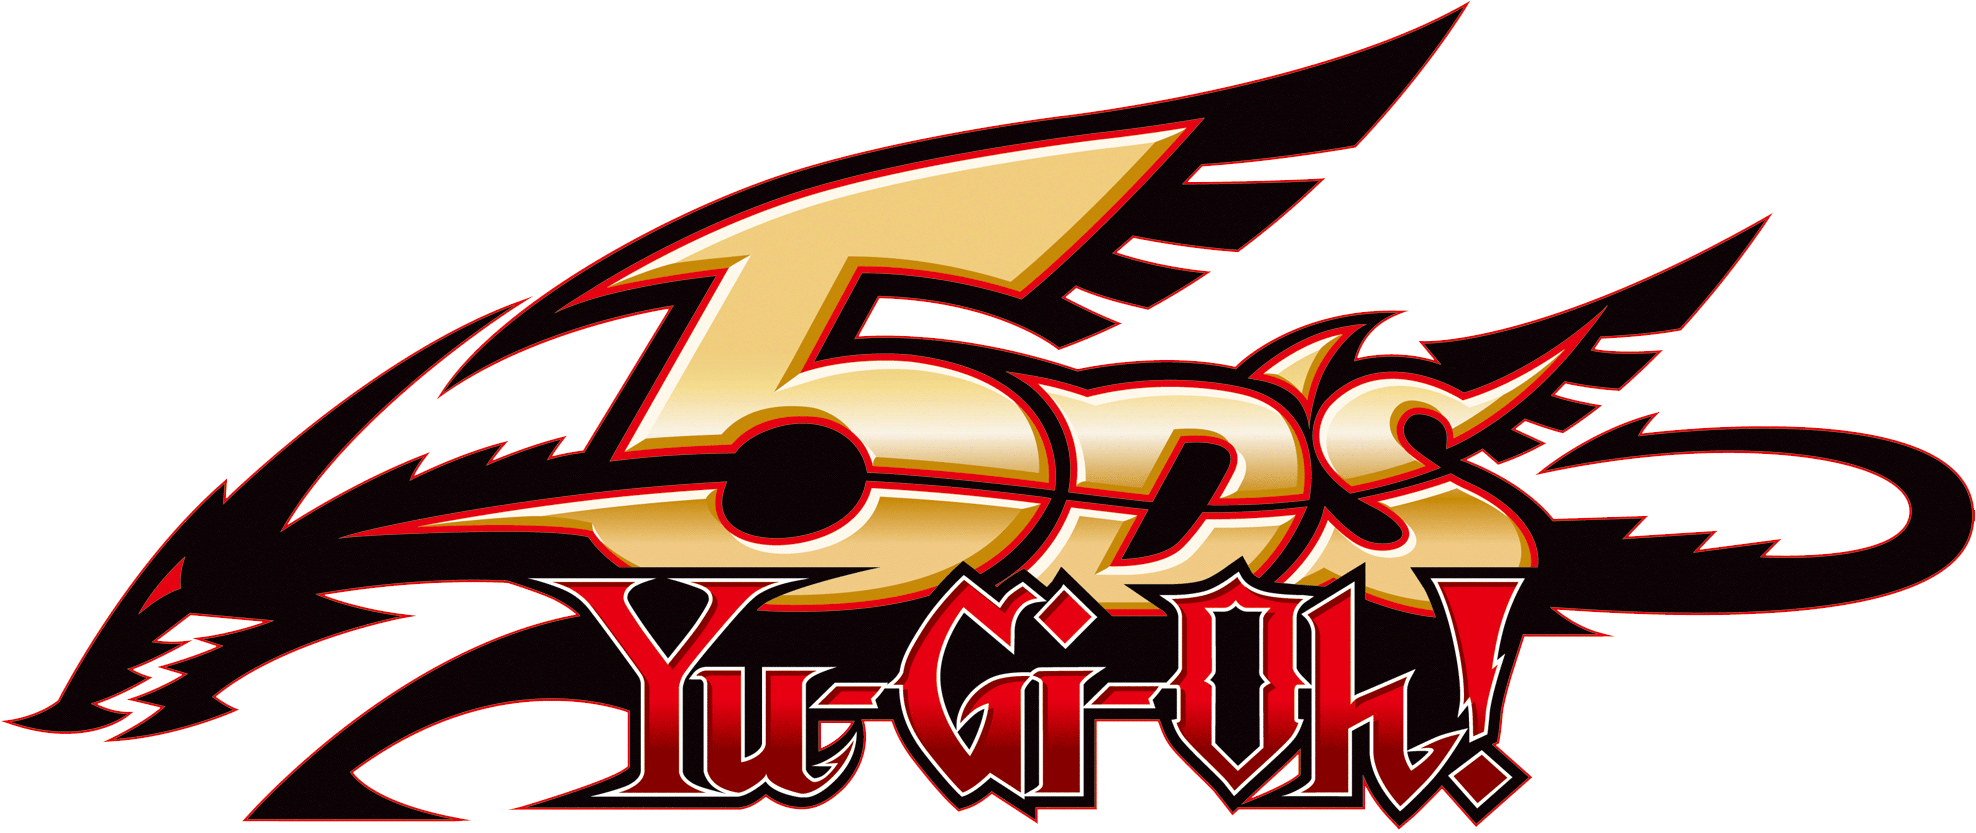 Yu-Gi-Oh 5D's Backgrounds, Compatible - PC, Mobile, Gadgets  1976x833 px